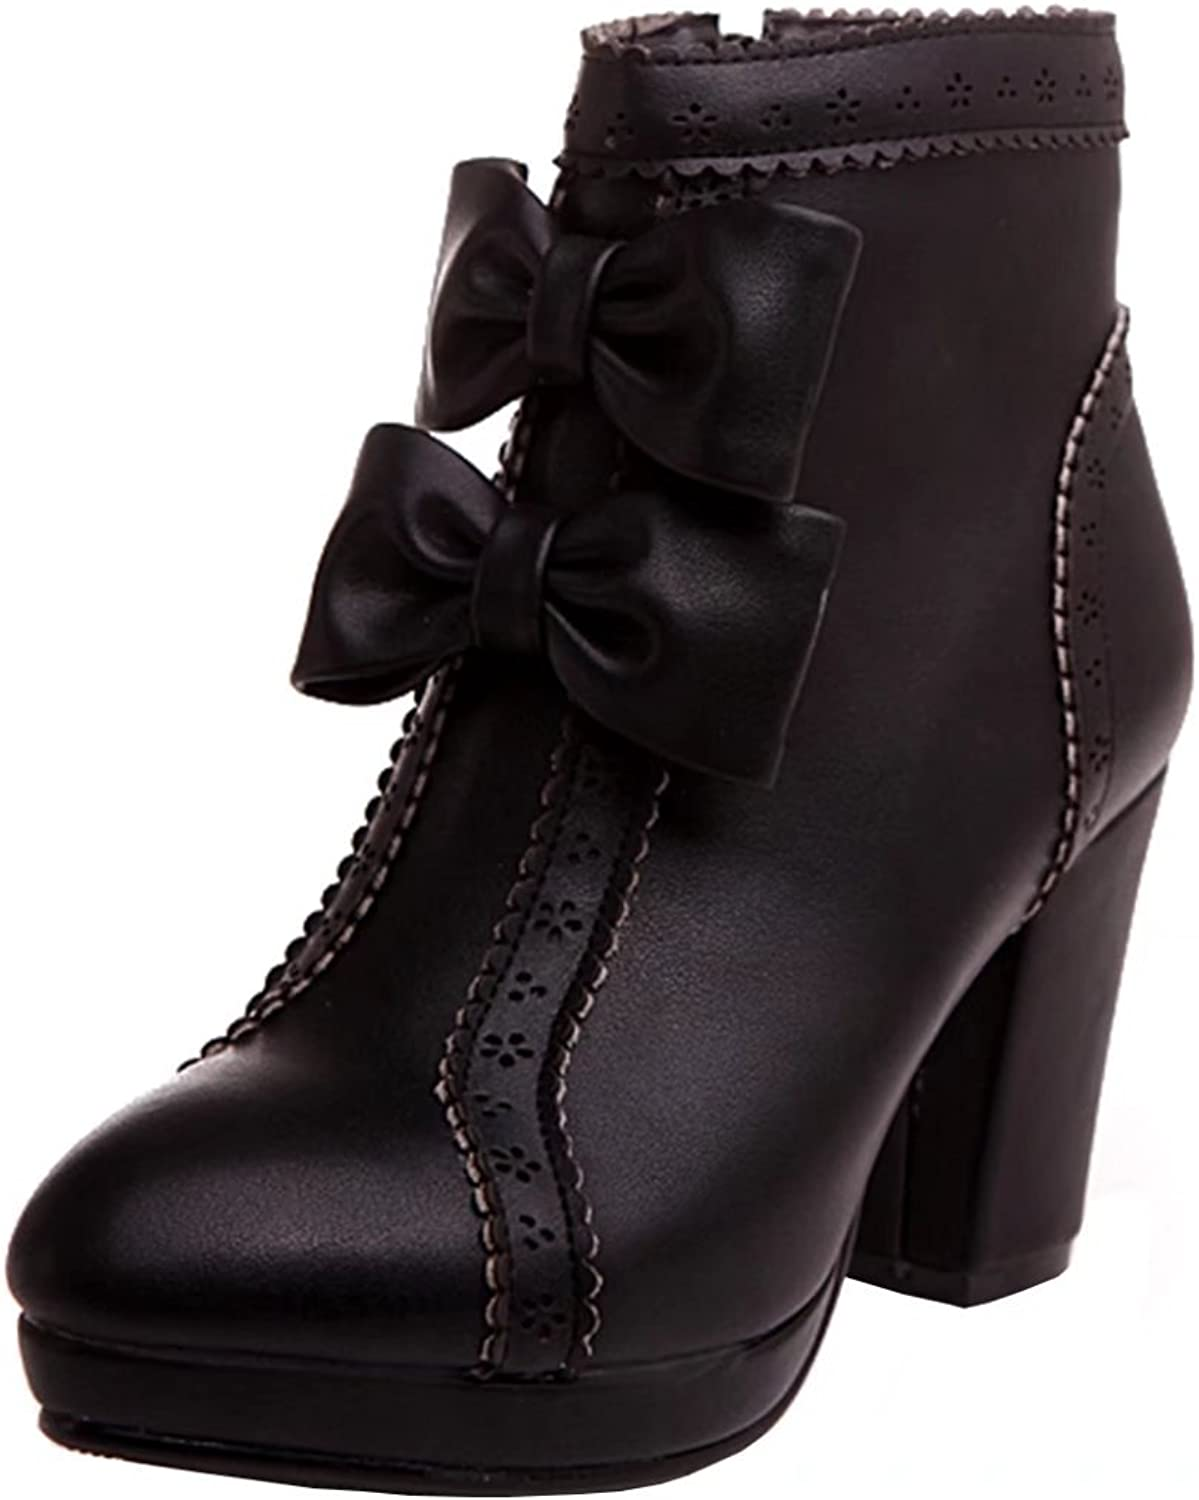 AIYOUMEI Women's Round Toe Bootie Thick Heel Autumn Winter Ankle Bootie with Bowtie